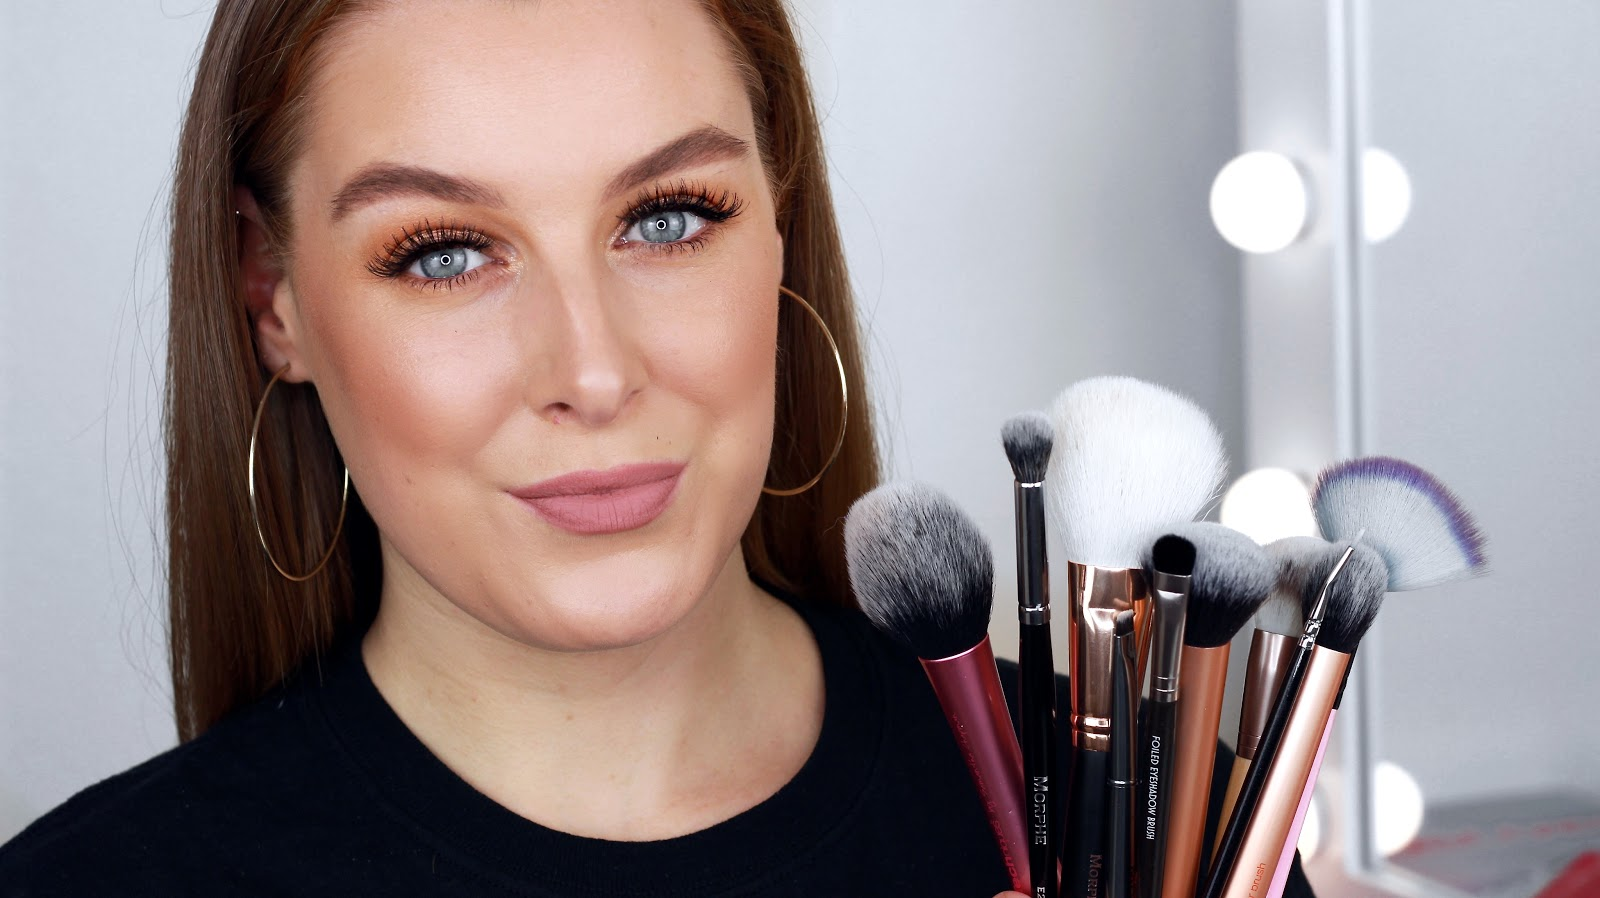 The Best Affordable Drugstore Makeup Brushes For Beginners & Pros